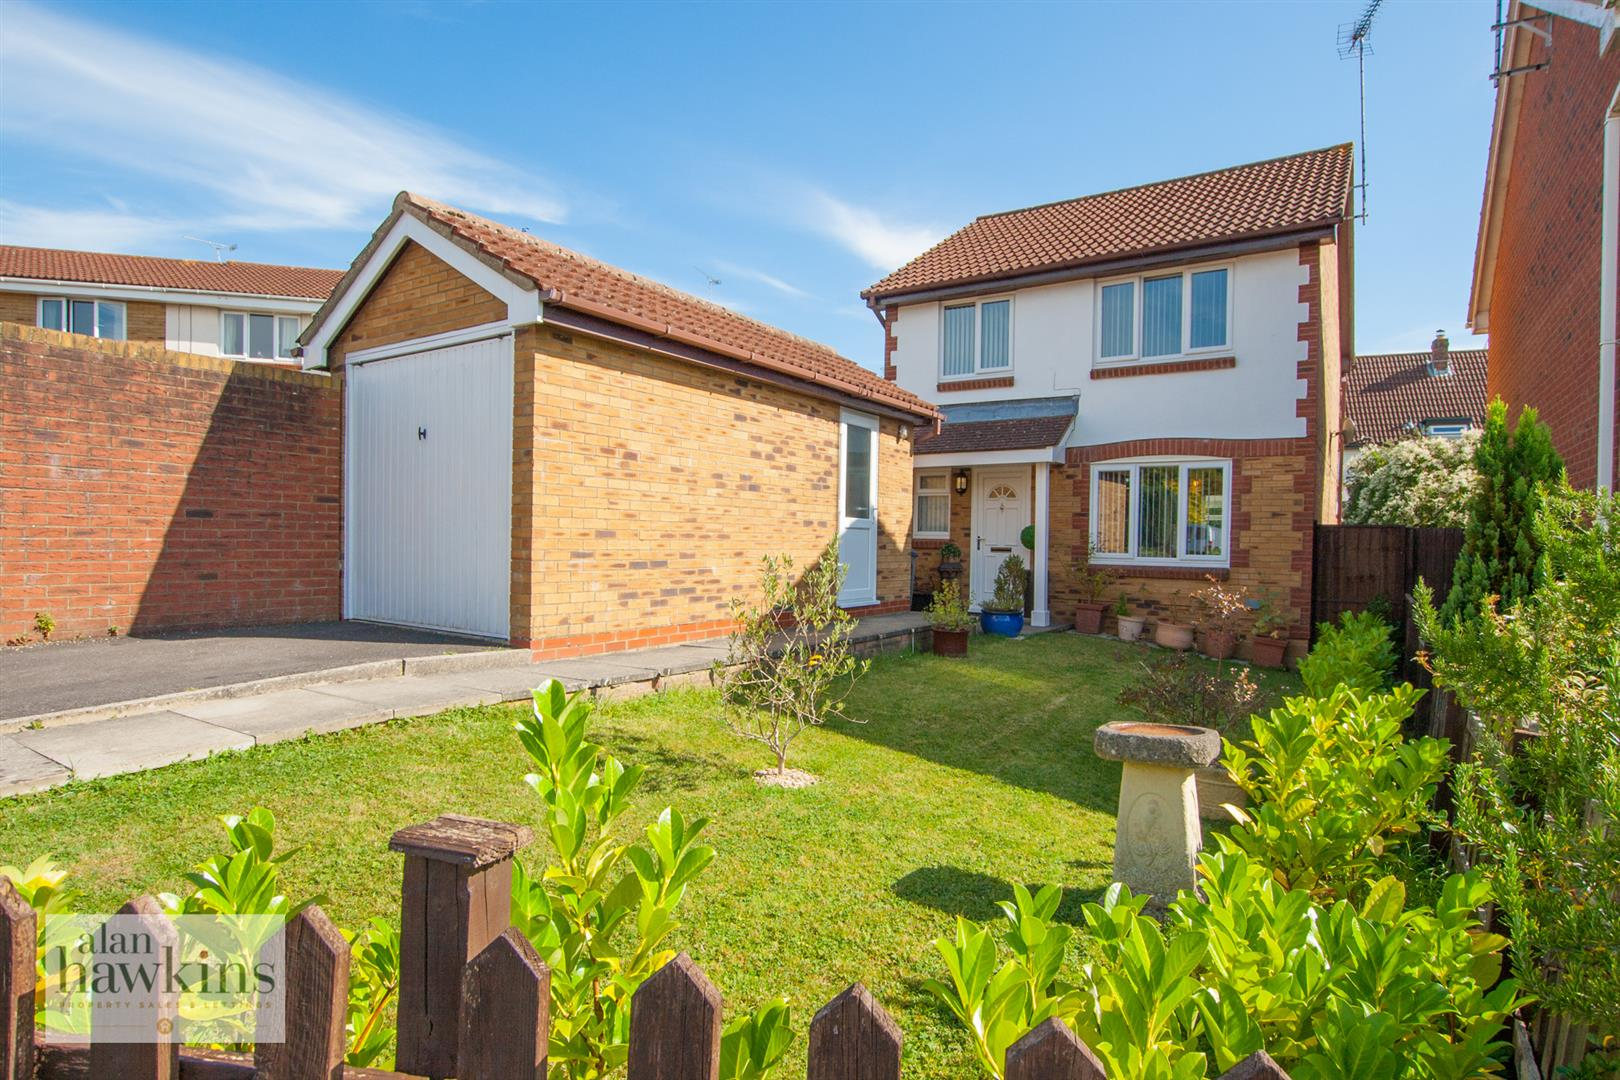 3 Bedrooms Detached House for sale in Otter Way, Royal Wootton Bassett